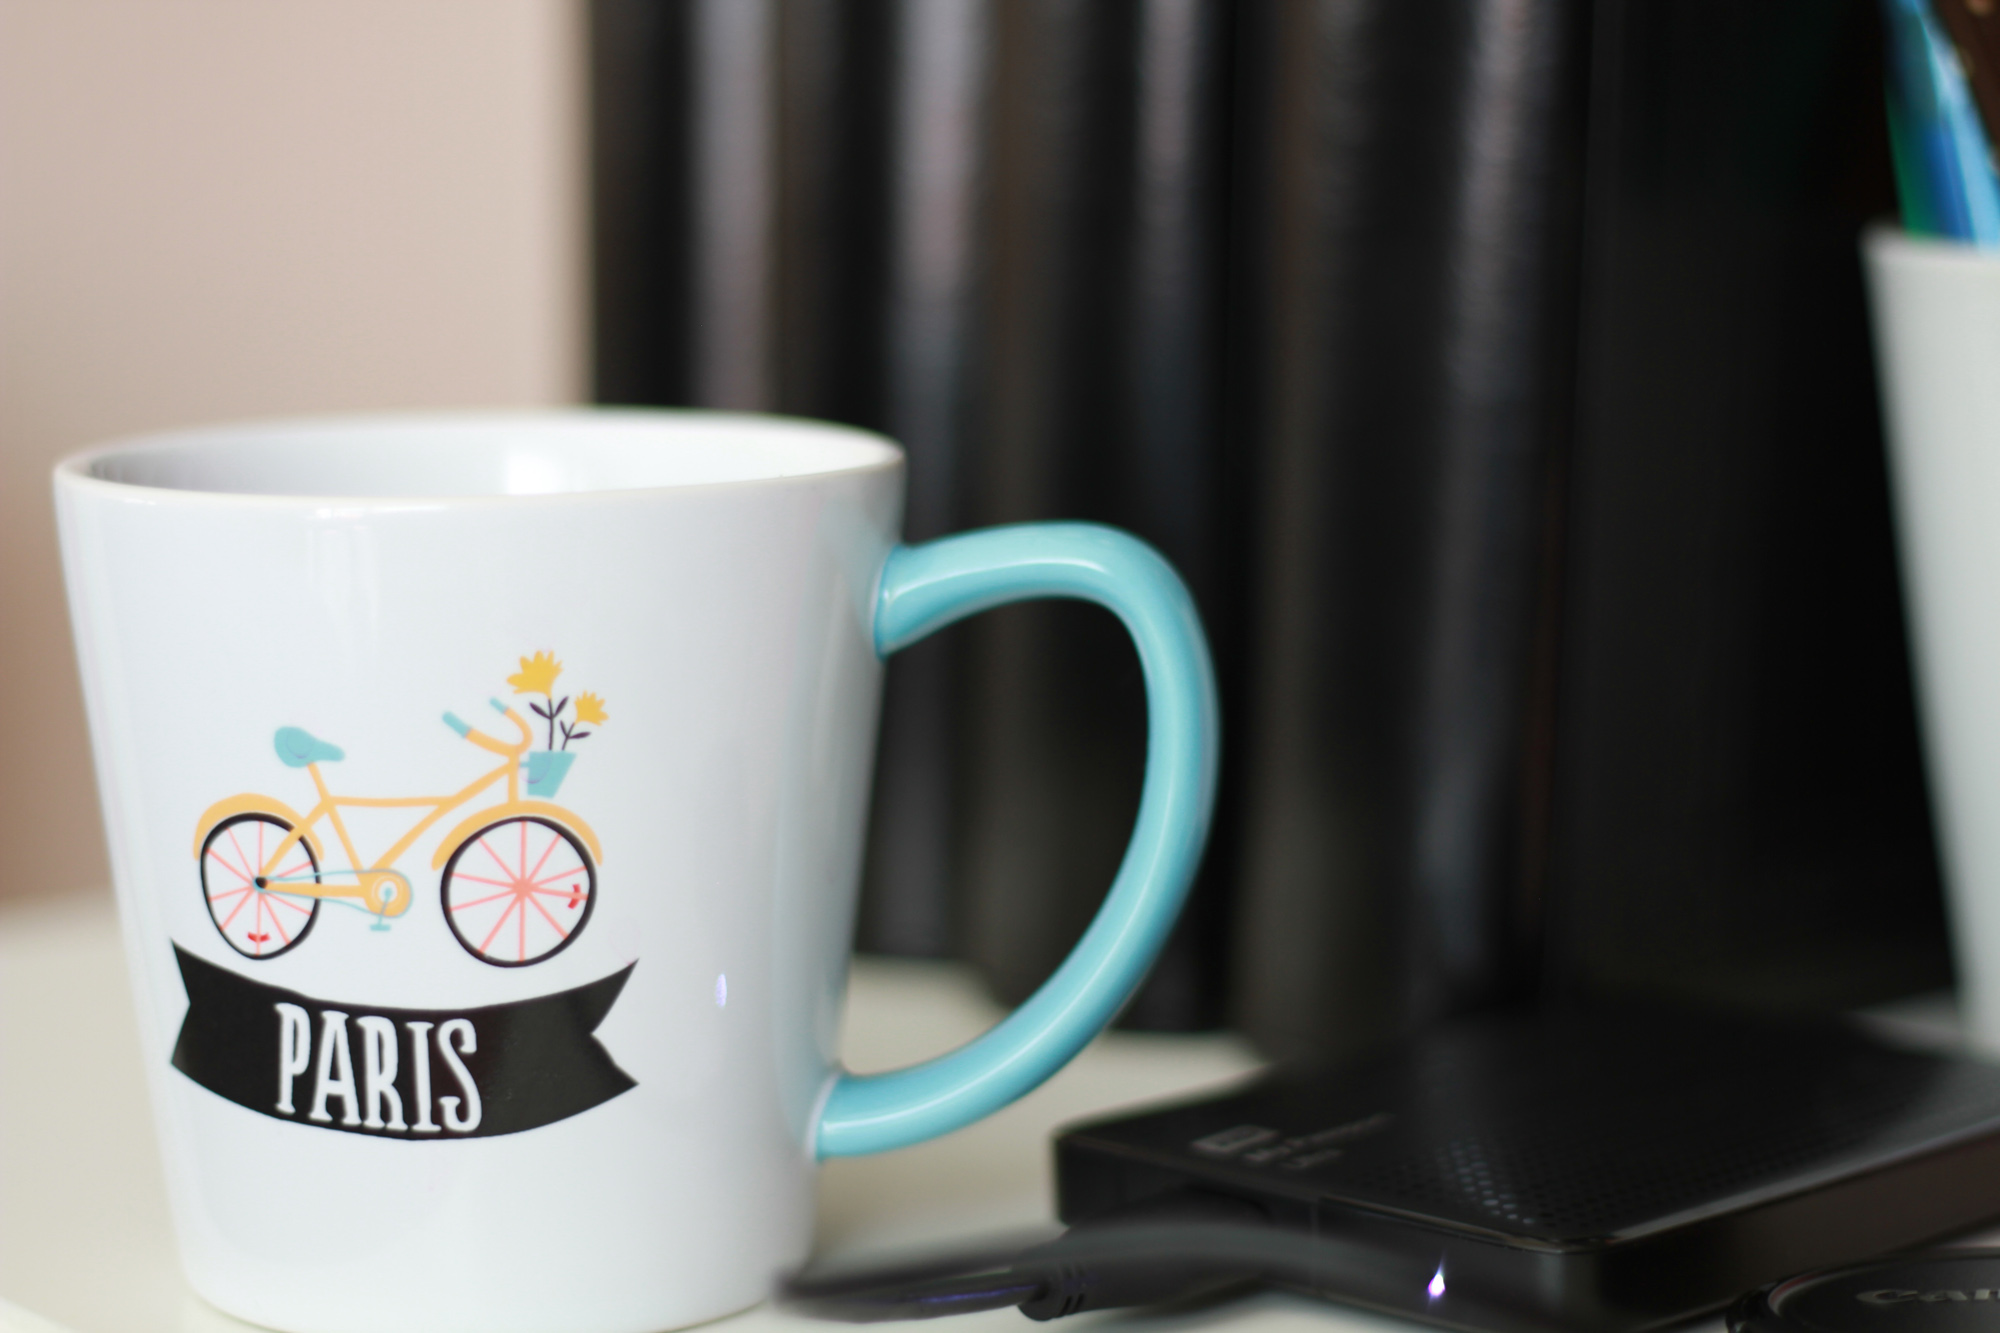 And an ode to my Paris mug with my beloved Youthberry Wild Orange Blossom Tea to get me through this weekend.No, this was not a gift from the event. I bought this mug at Targer awhile back. It was the closest thing near me to practice some focusing. heehee